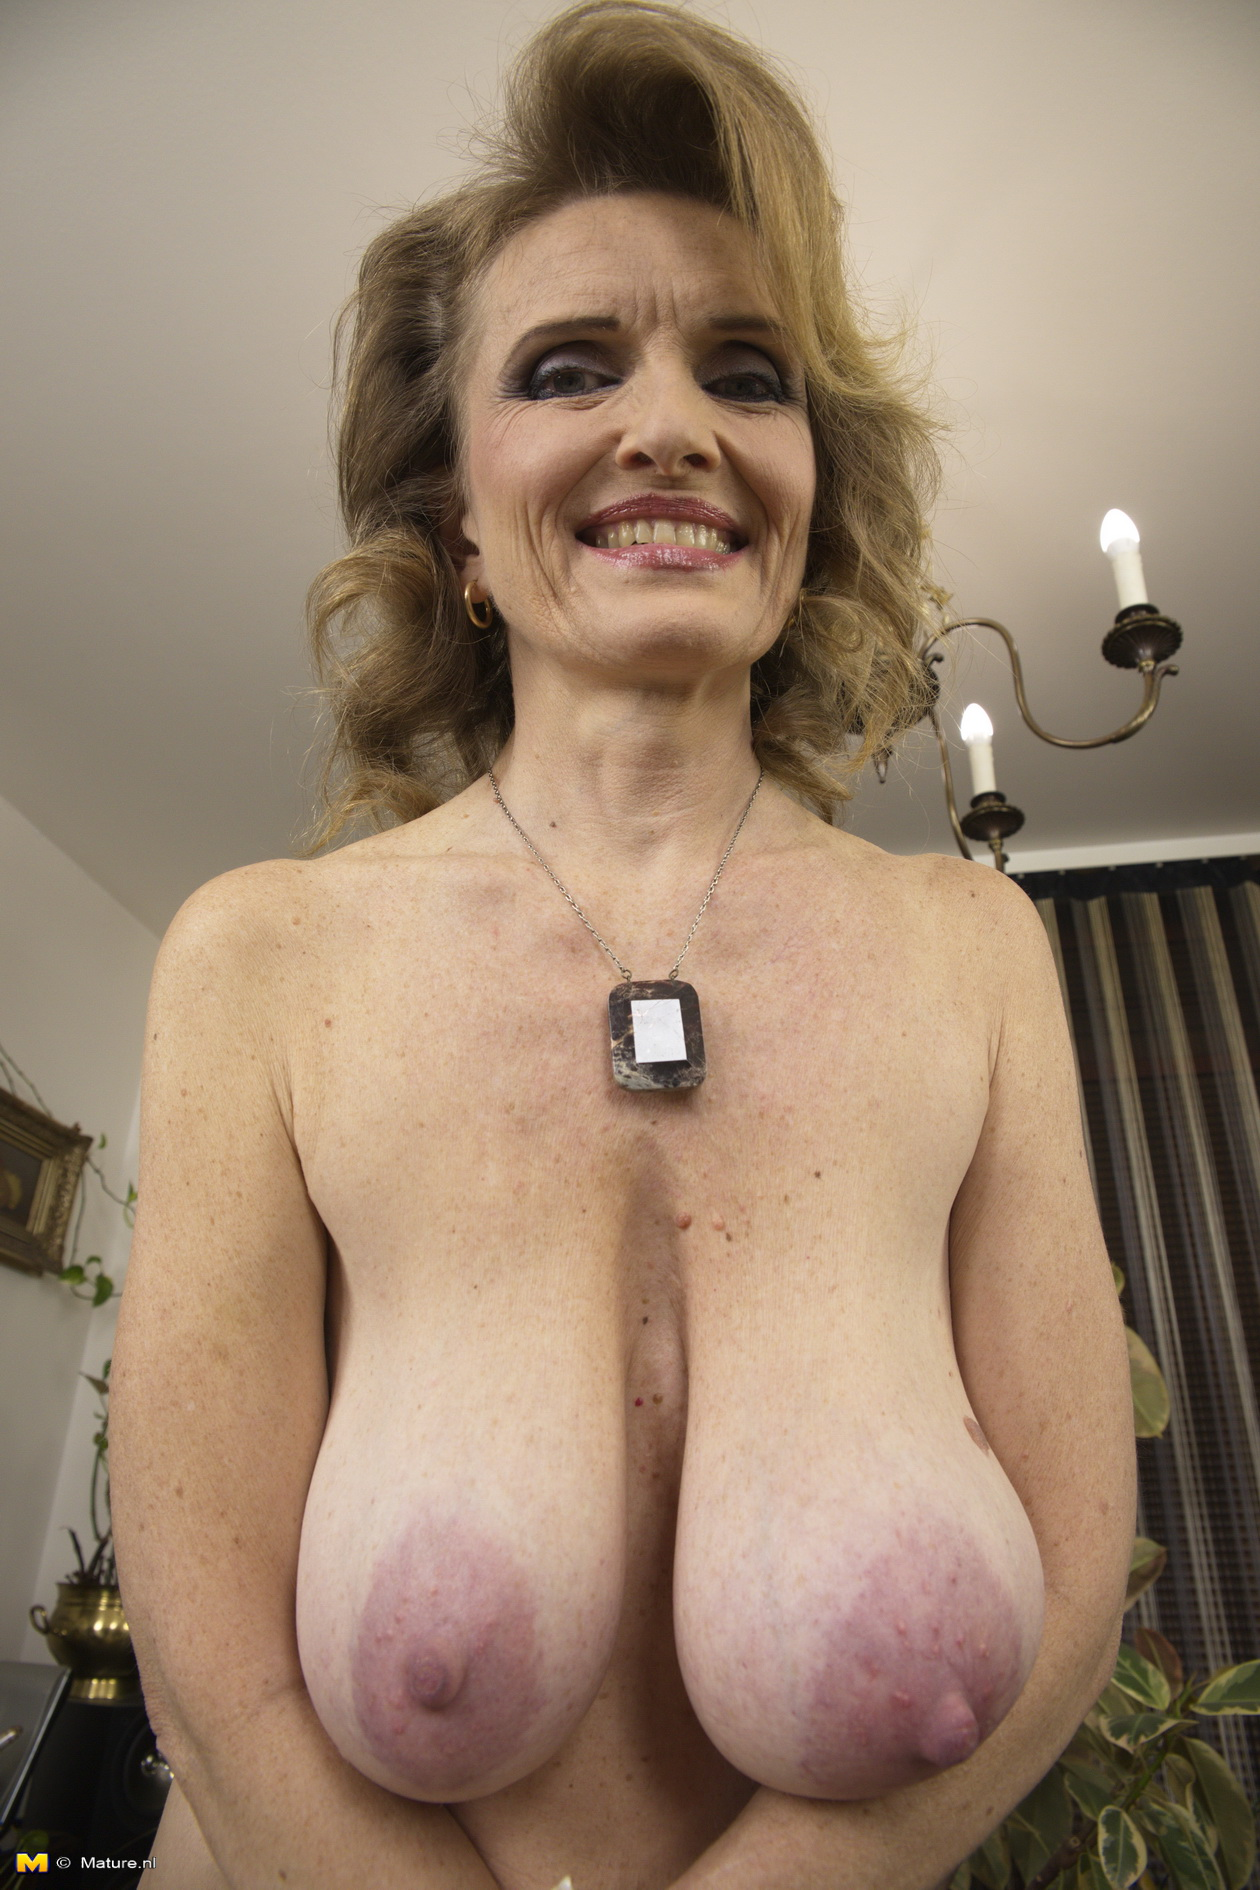 big breasted mature lady playing alone